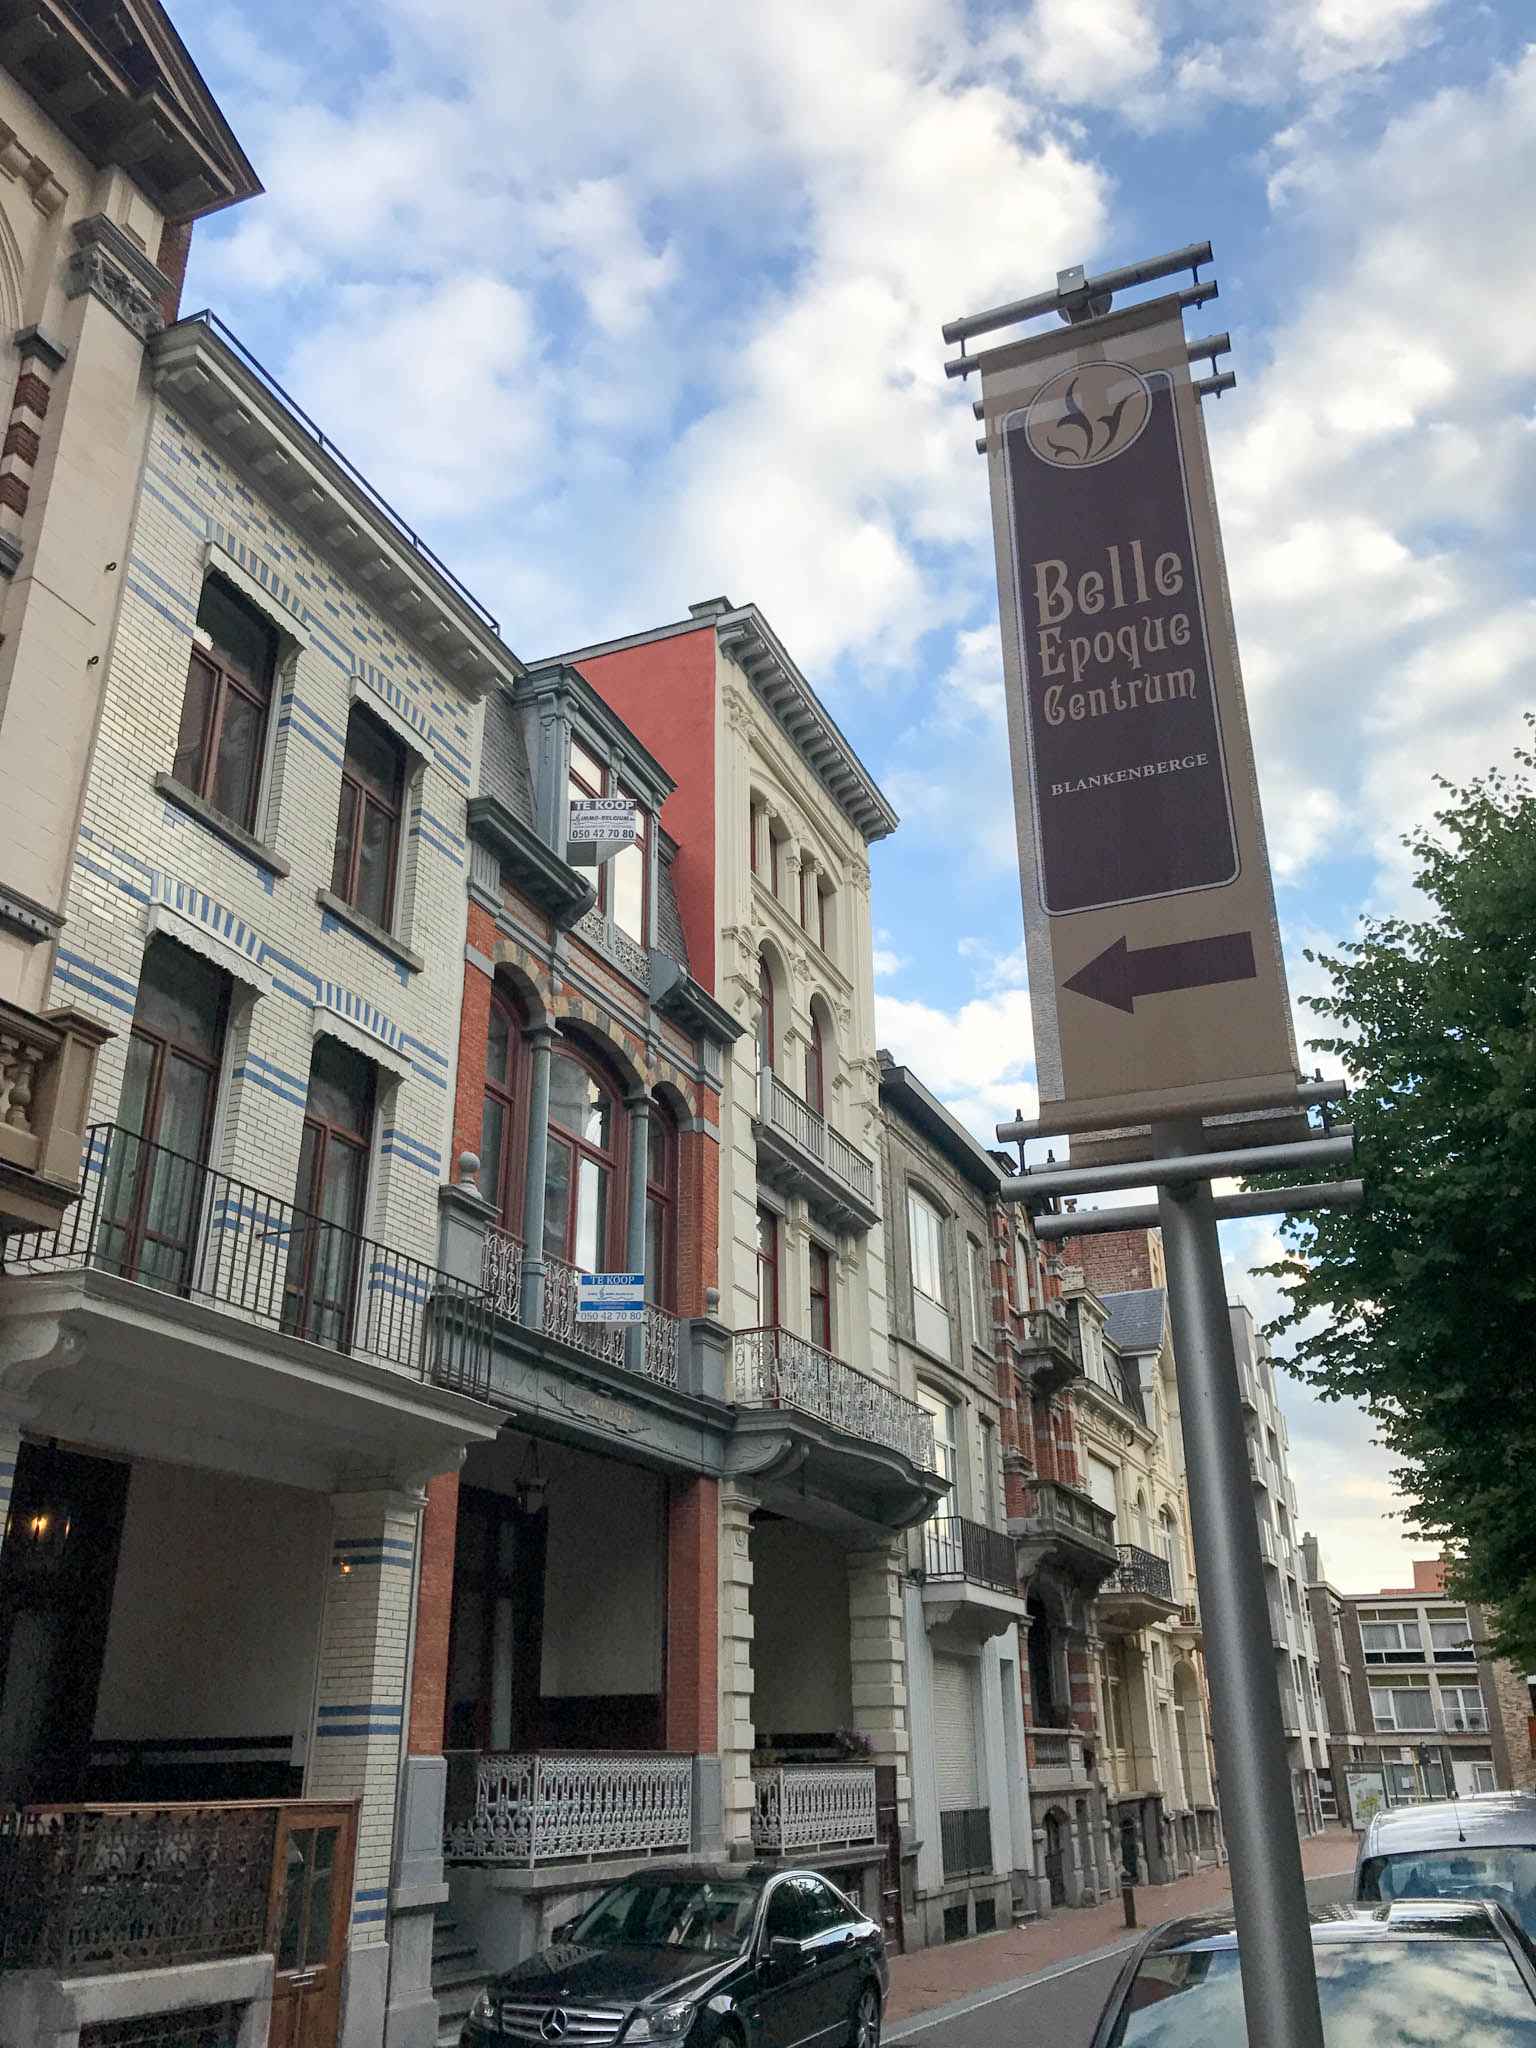 Belle Epoque Centrum Blankenberge